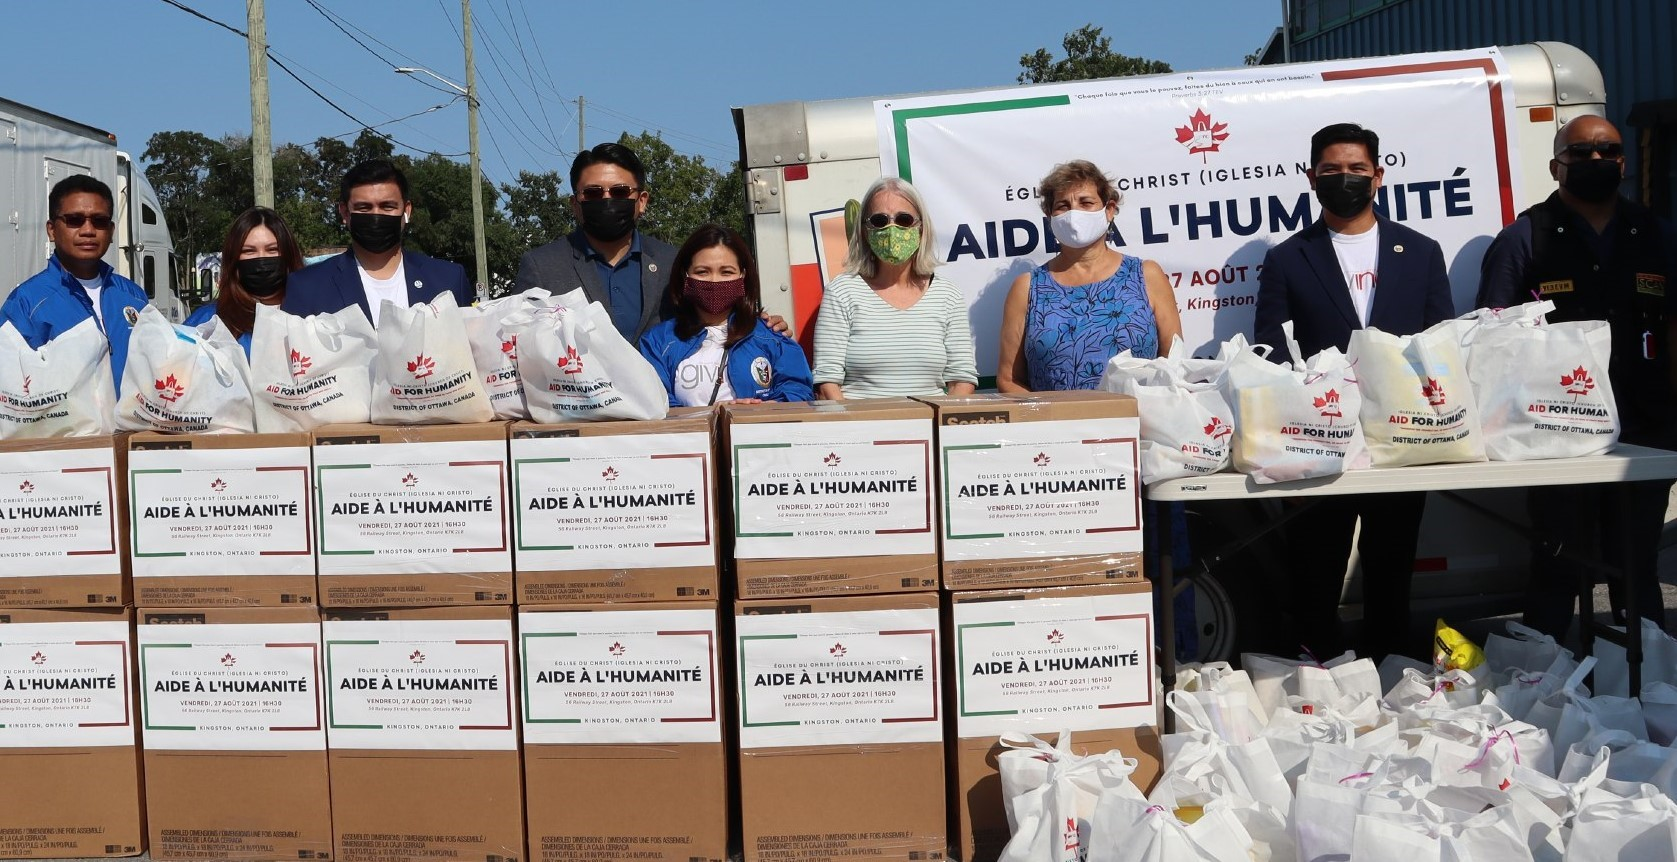 Iglesia Ni Cristo brings aid to First Nations communities in Canada